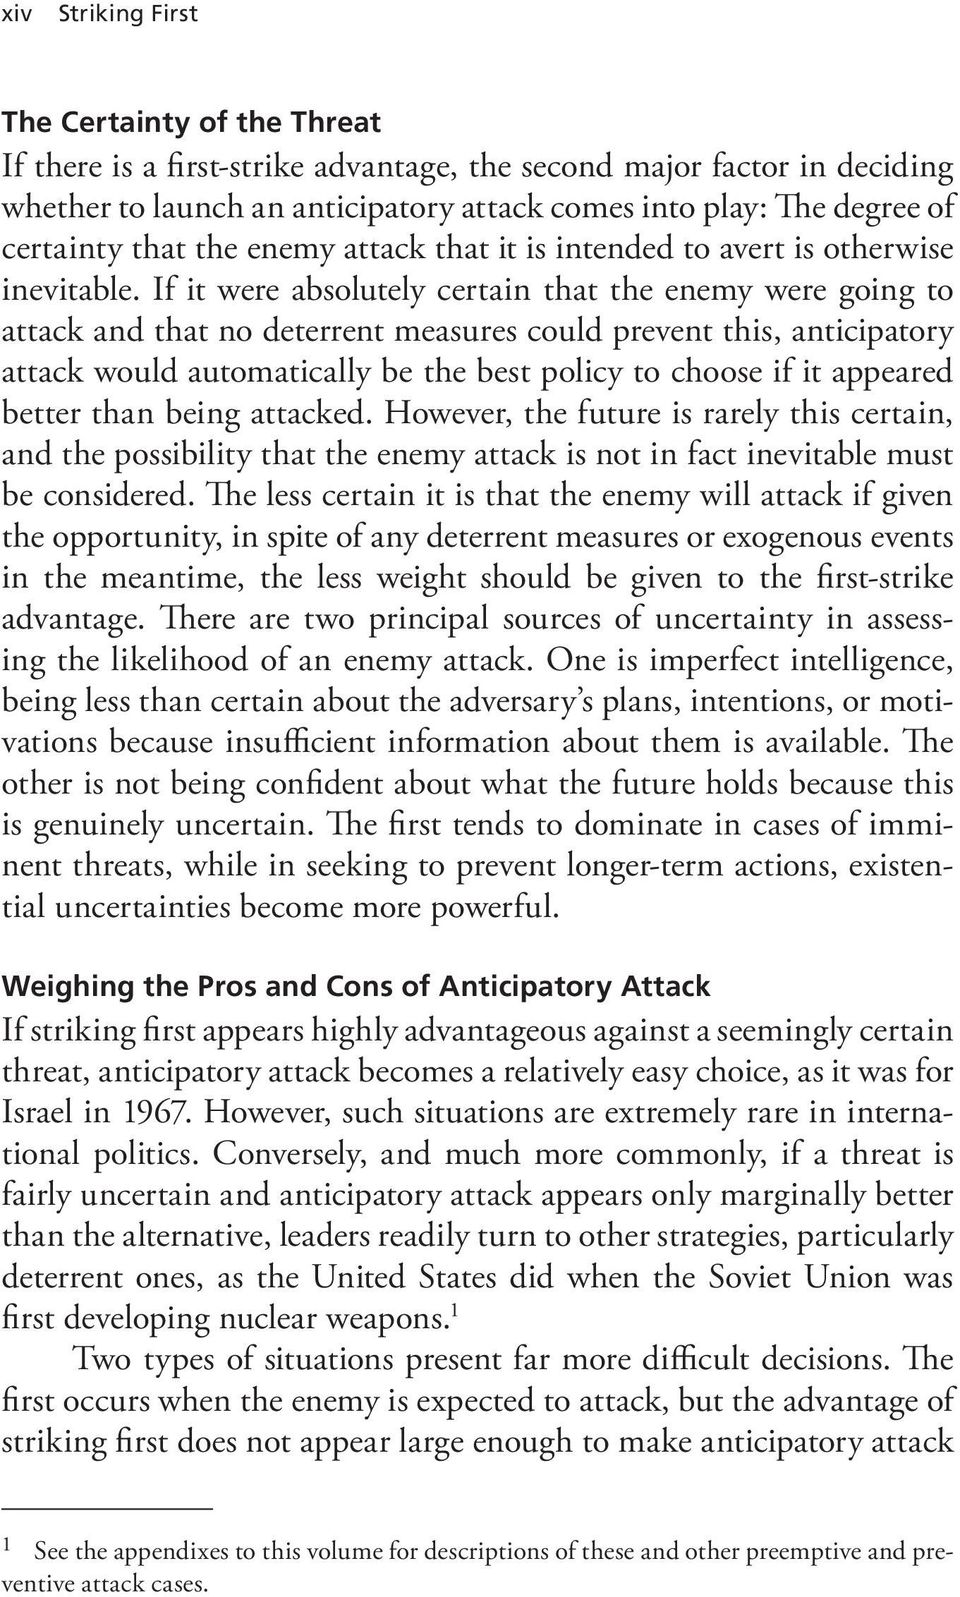 If it were absolutely certain that the enemy were going to attack and that no deterrent measures could prevent this, anticipatory attack would automatically be the best policy to choose if it